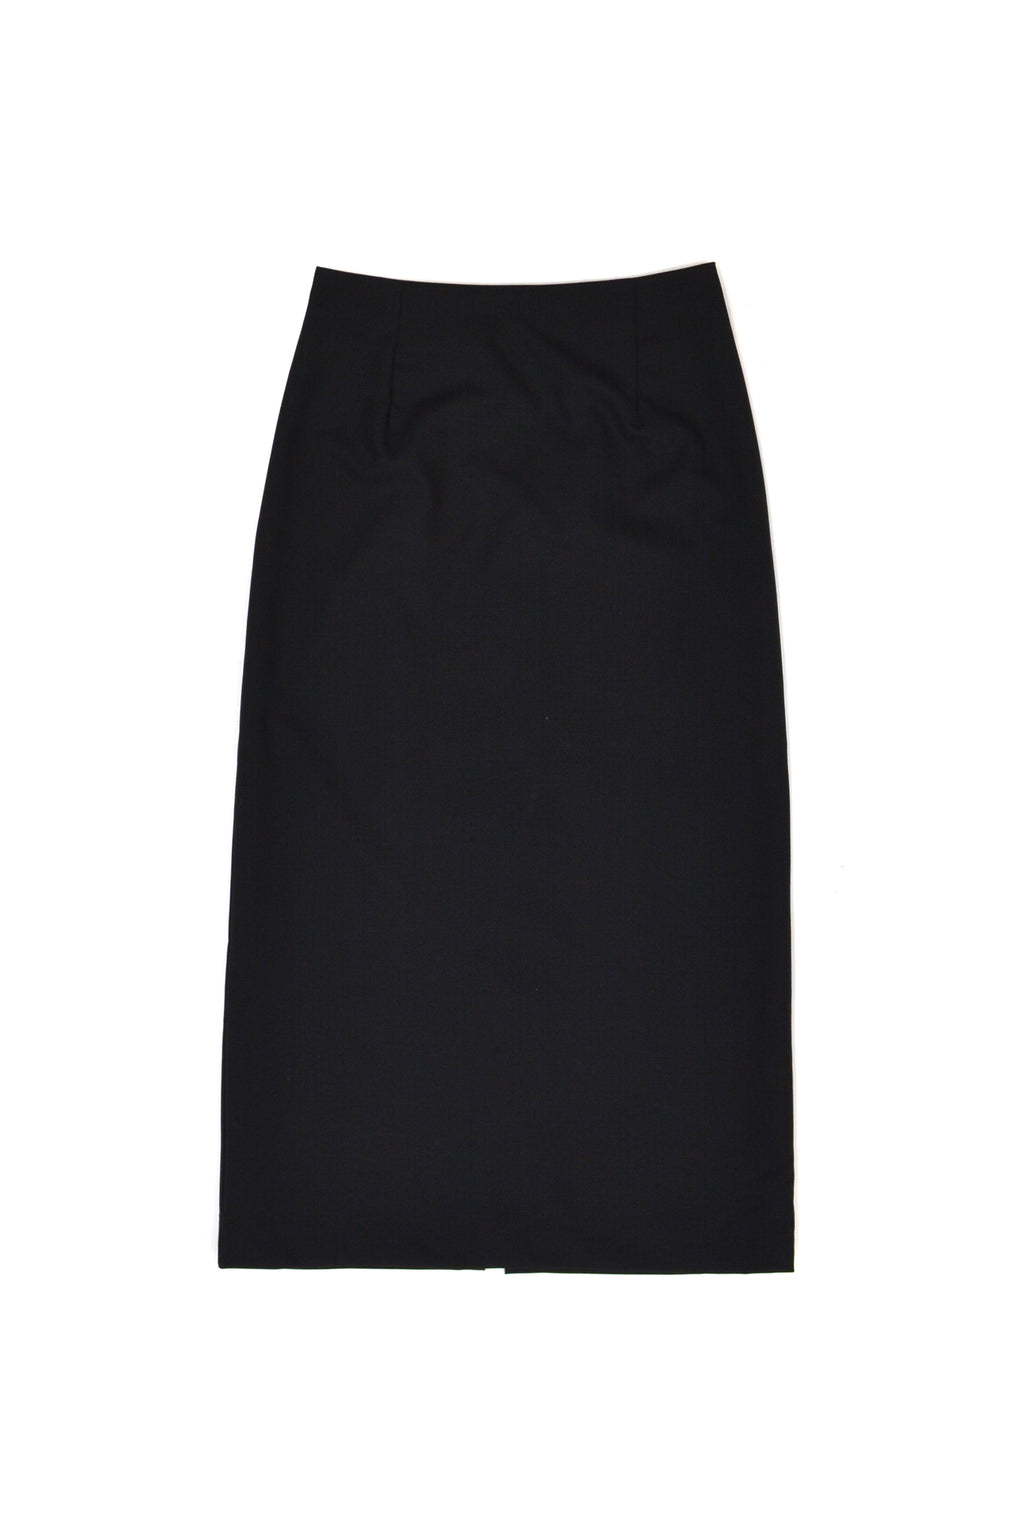 SOOP SOOP Office Skirt